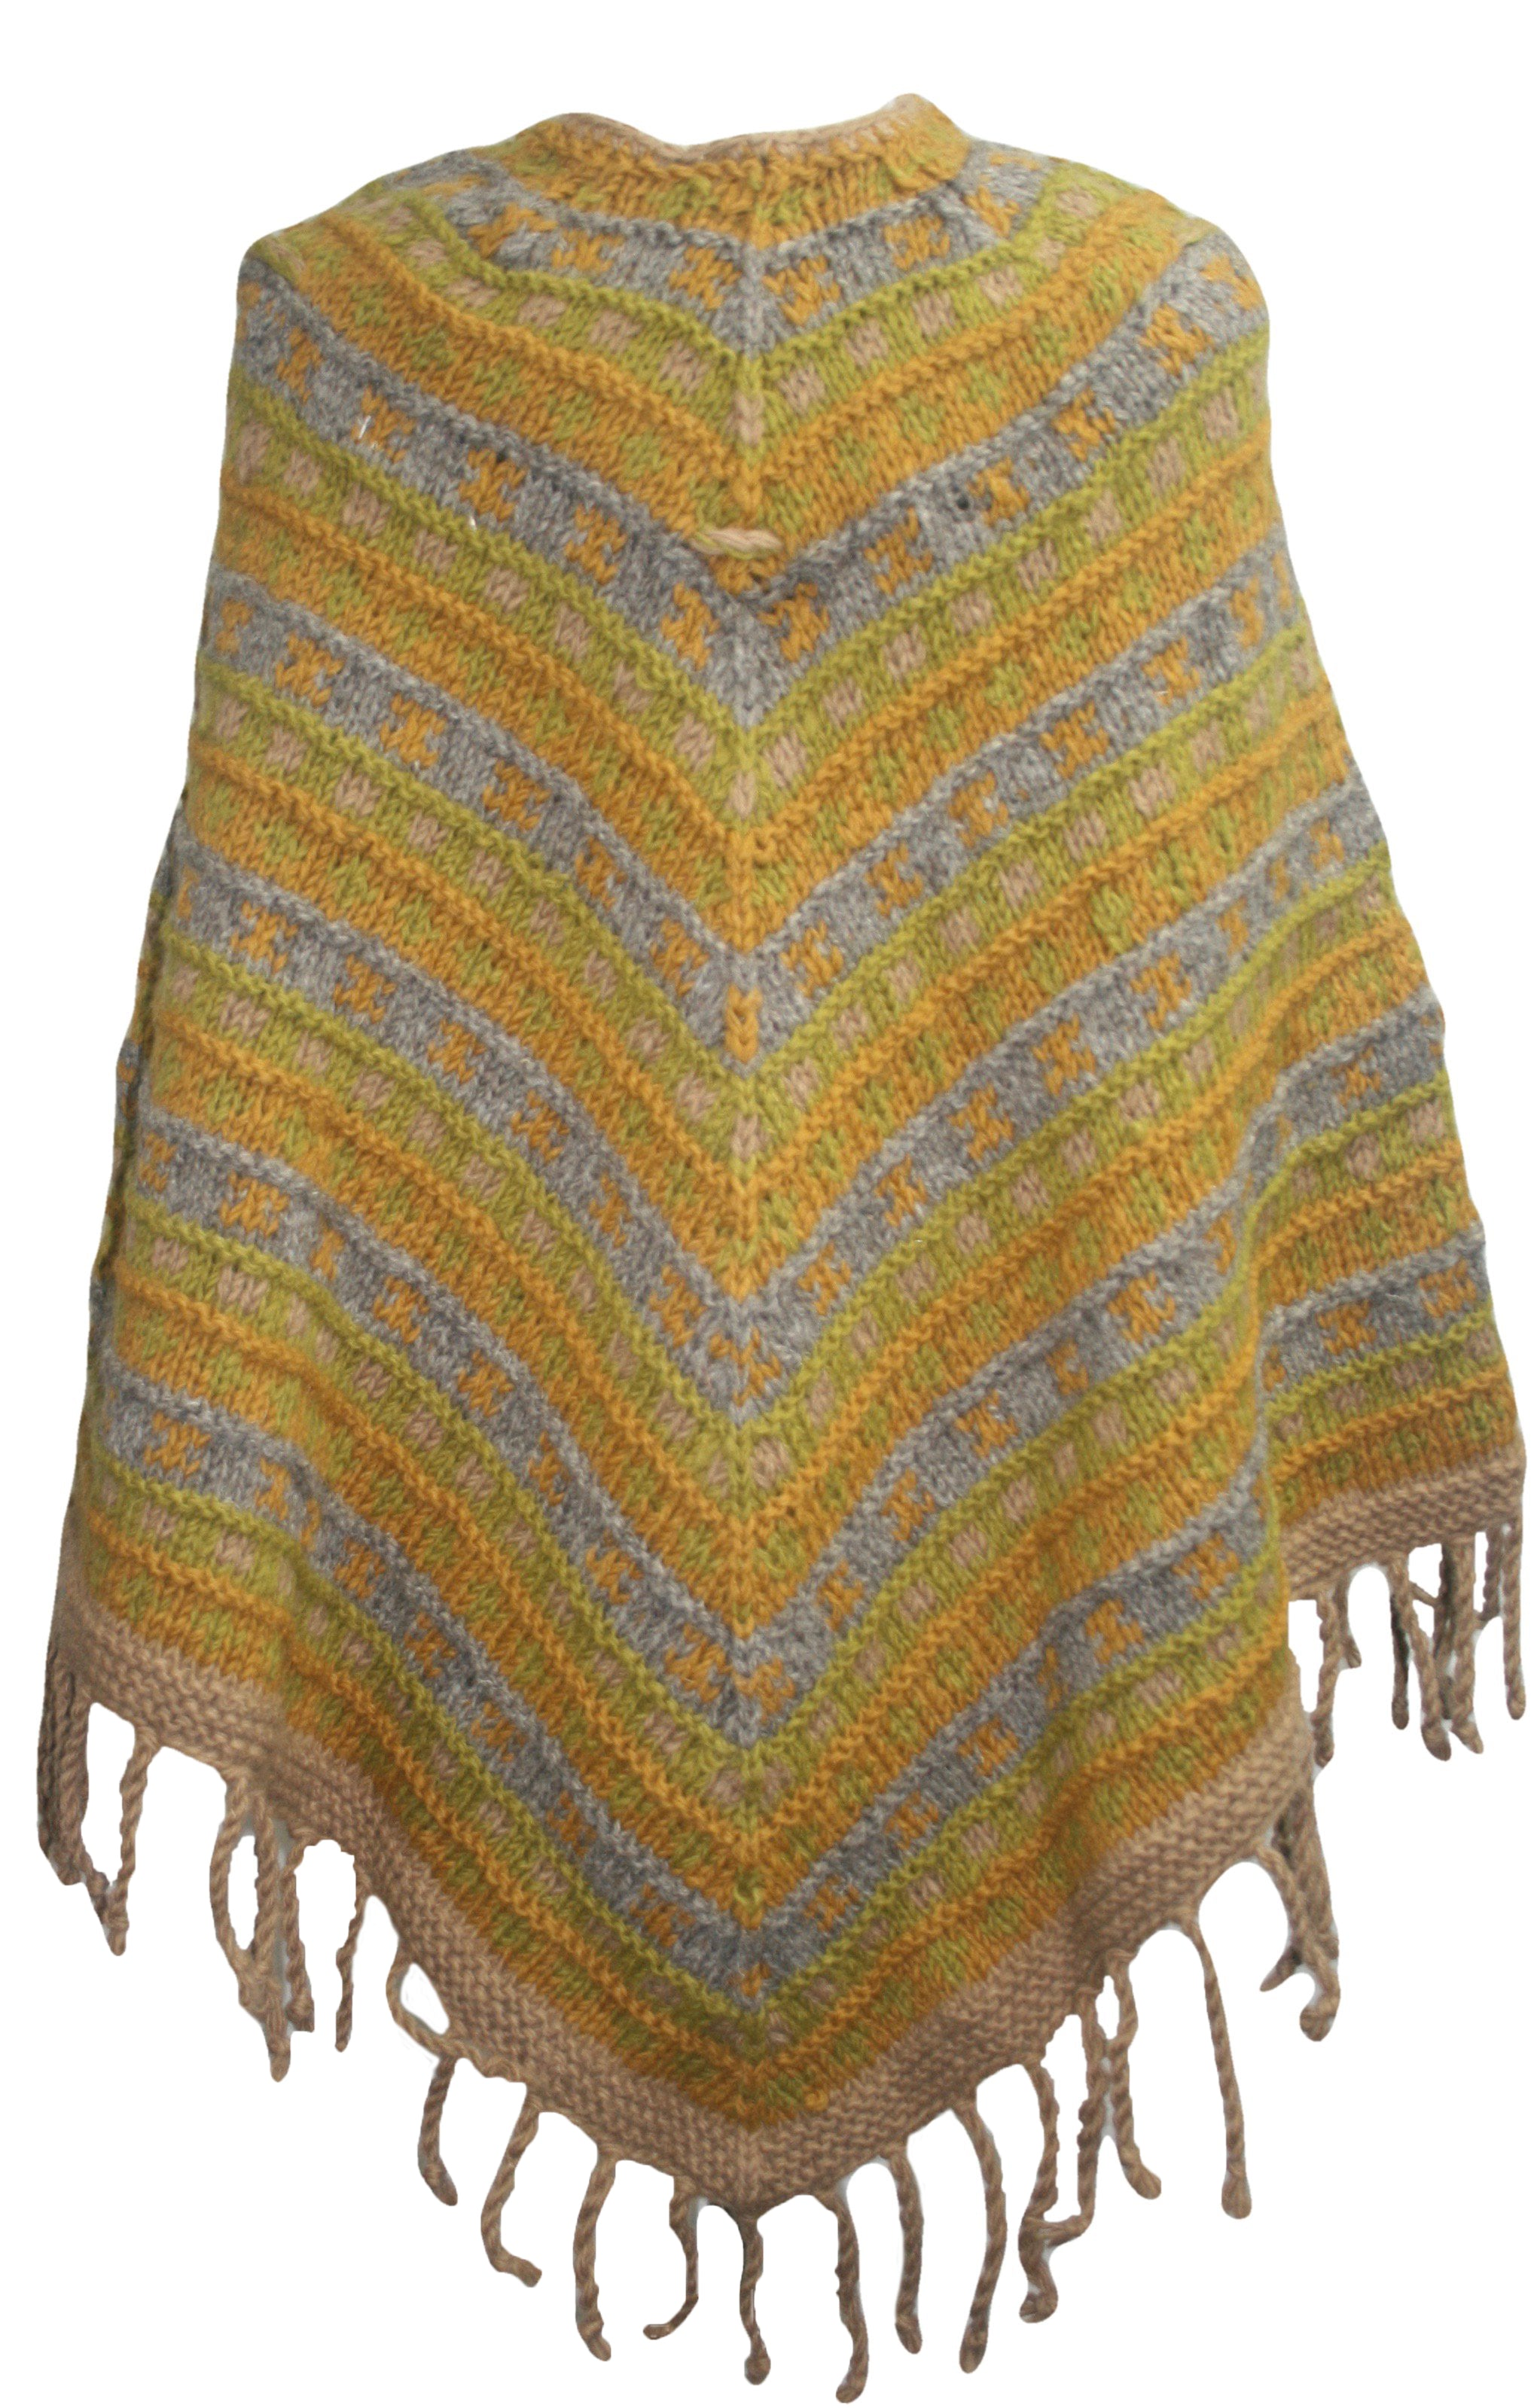 PN 200 Himalayan Thick Sheep Wool Hand Knitted Poncho - Agan Traders, PN 200 17